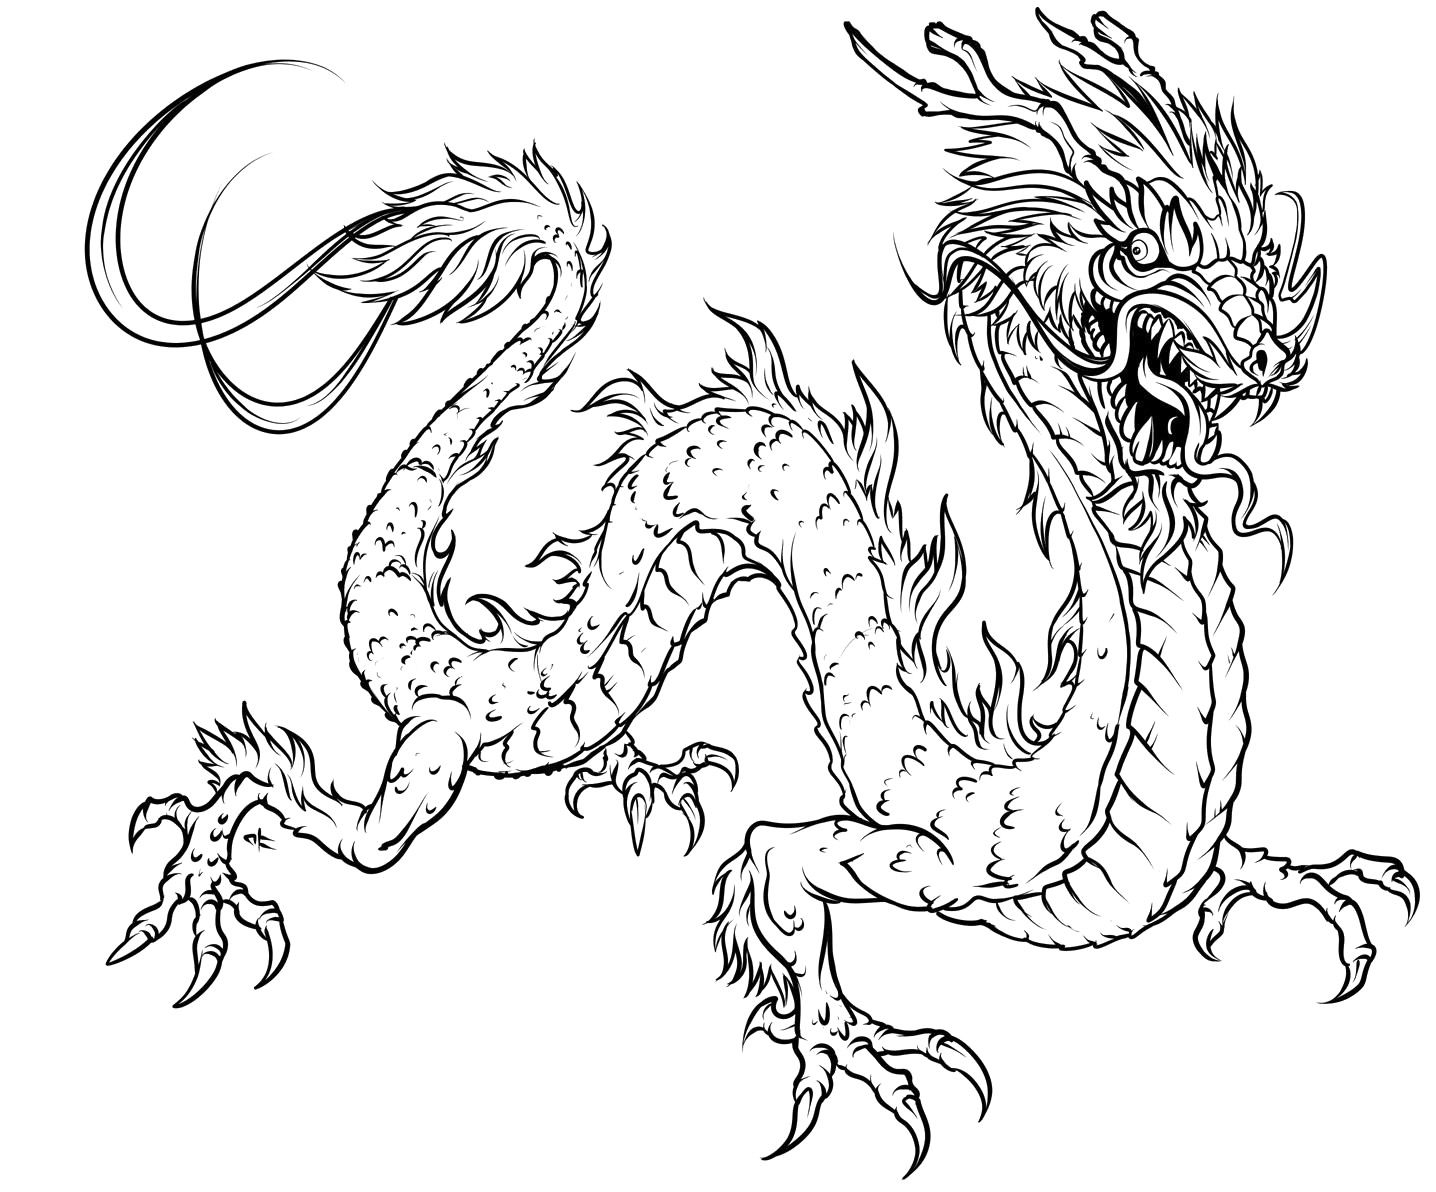 1436x1192 Dragon Coloring Pages For Adults To Download And Print For Free